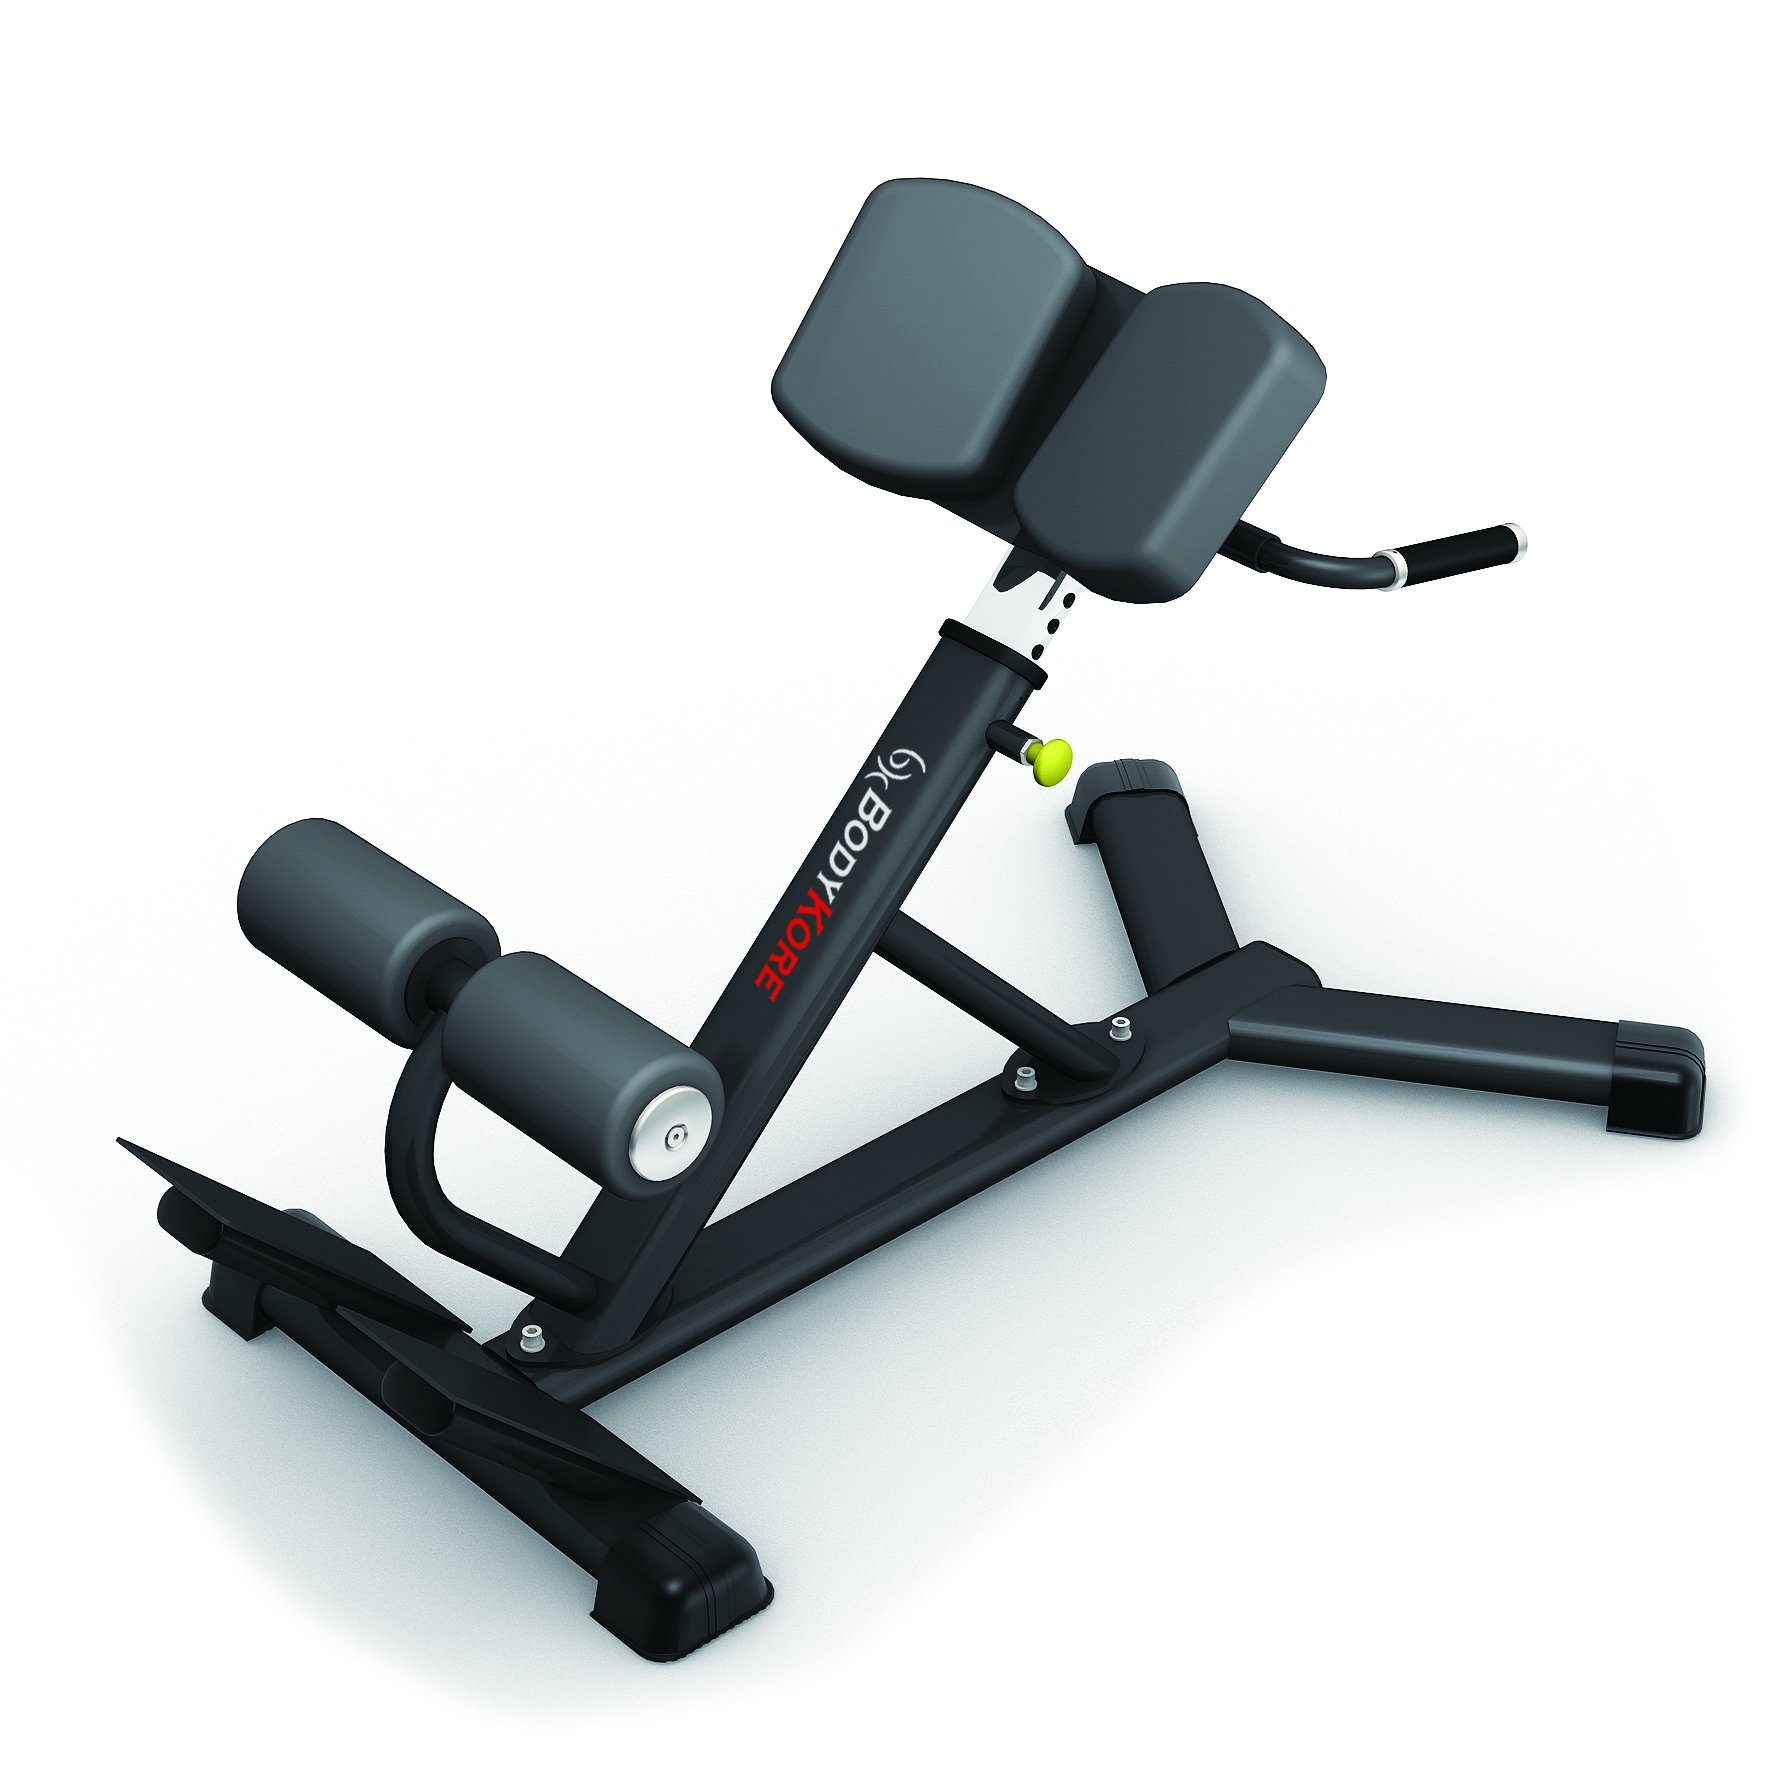 Bodykore Commercial Hyper Extension Roman Chair Lower Back/Hamstrings/Glute Machine 45 Degree Angle (1000lb Rated) G204